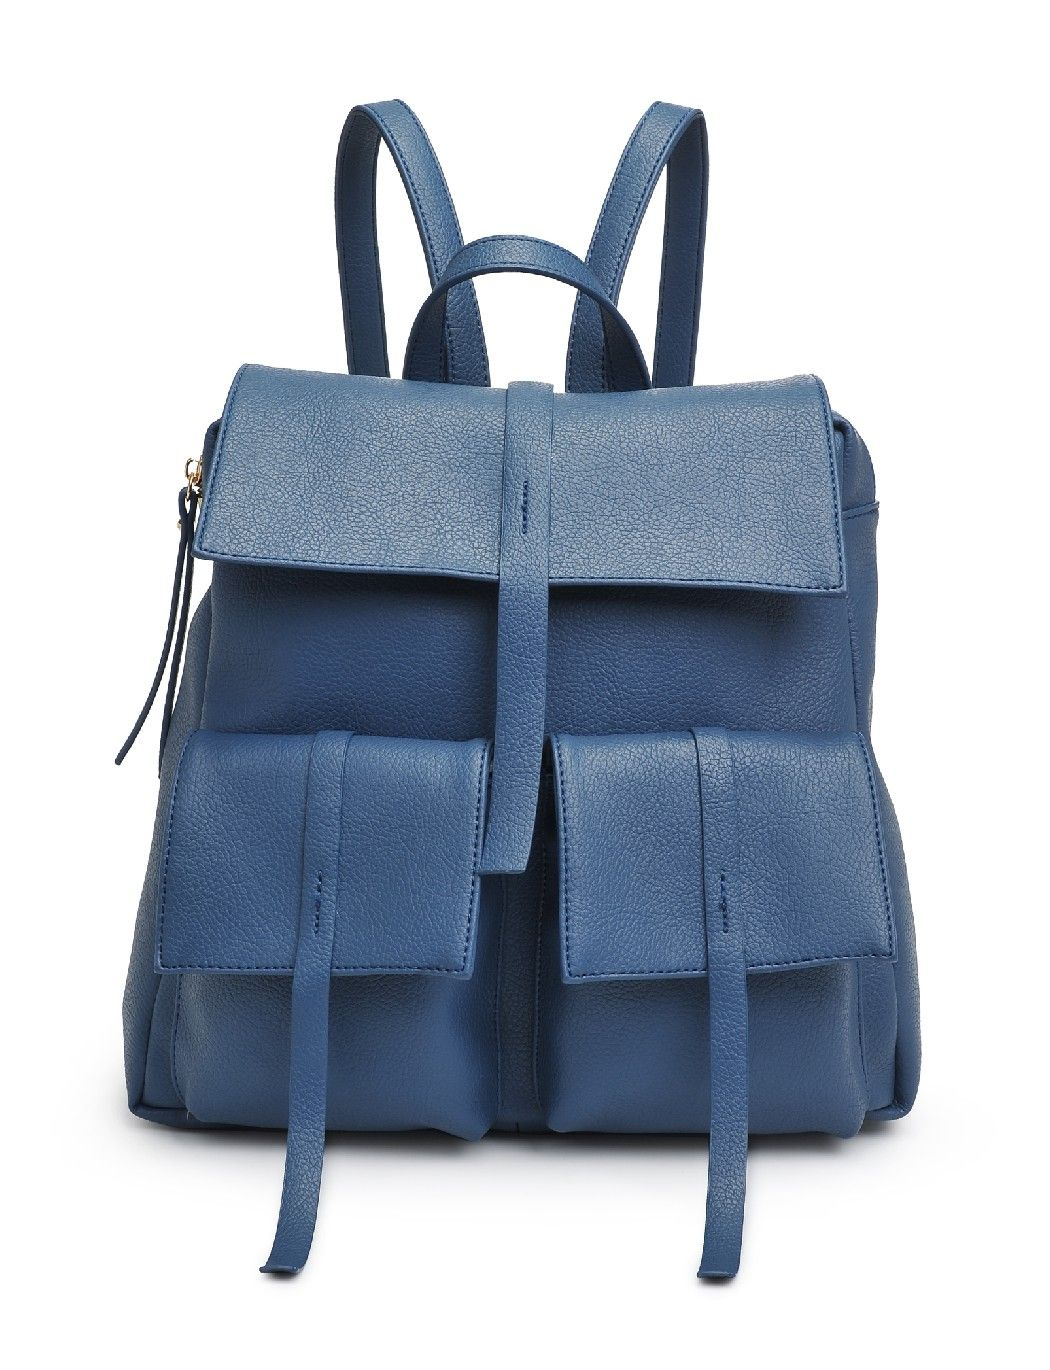 Utility Backpack - Extended Length